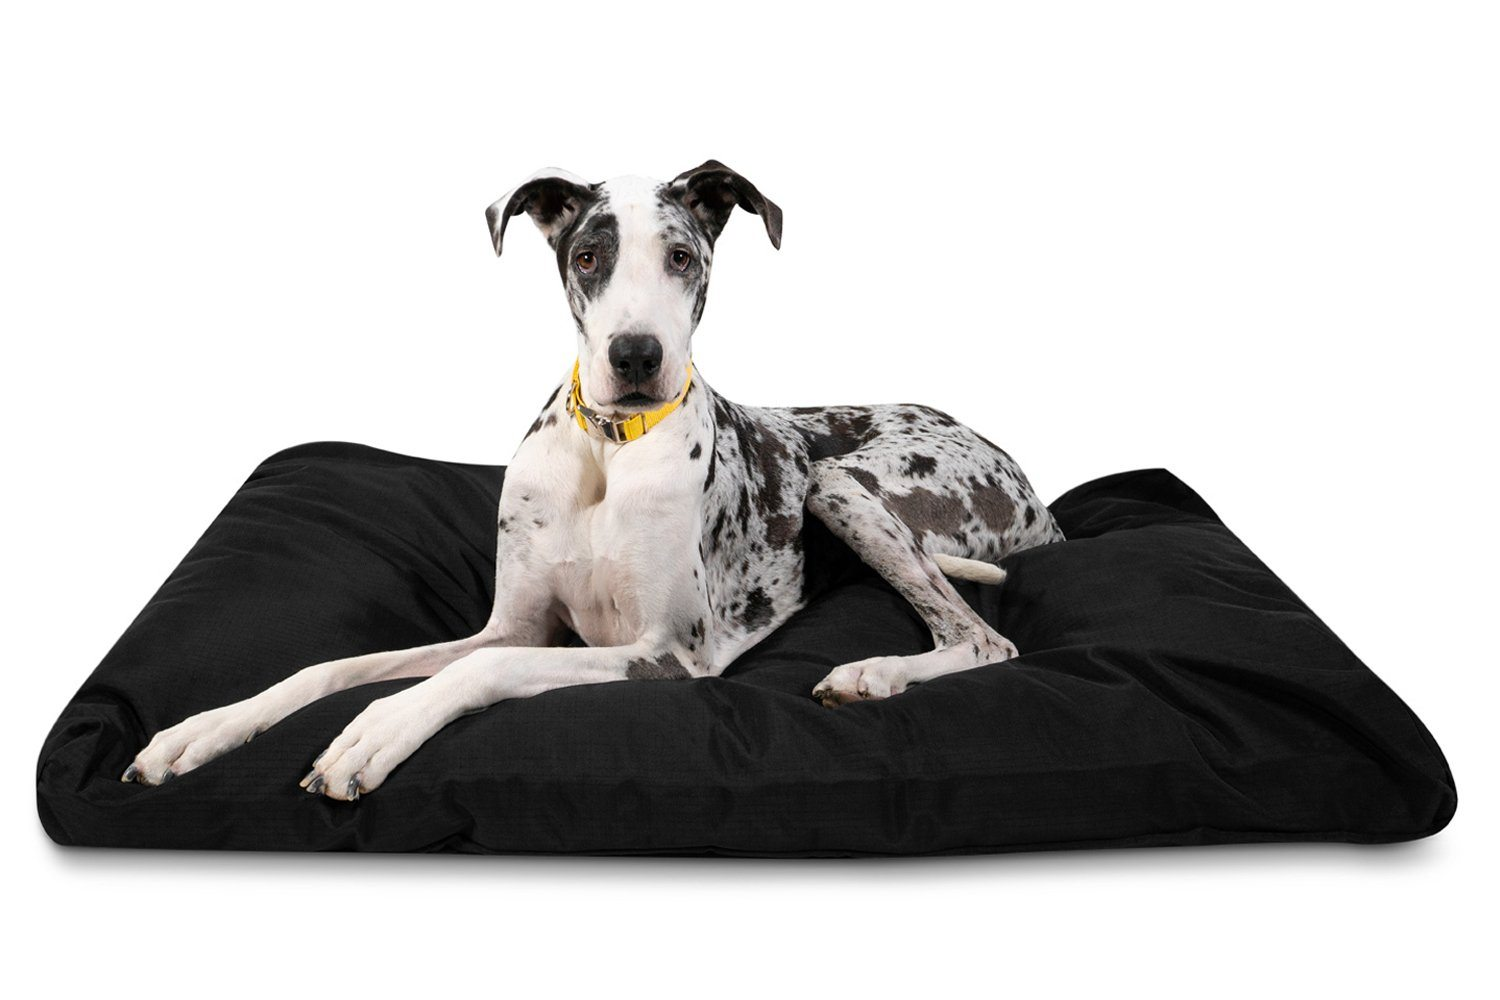 Great Dane is resting in large dog bed